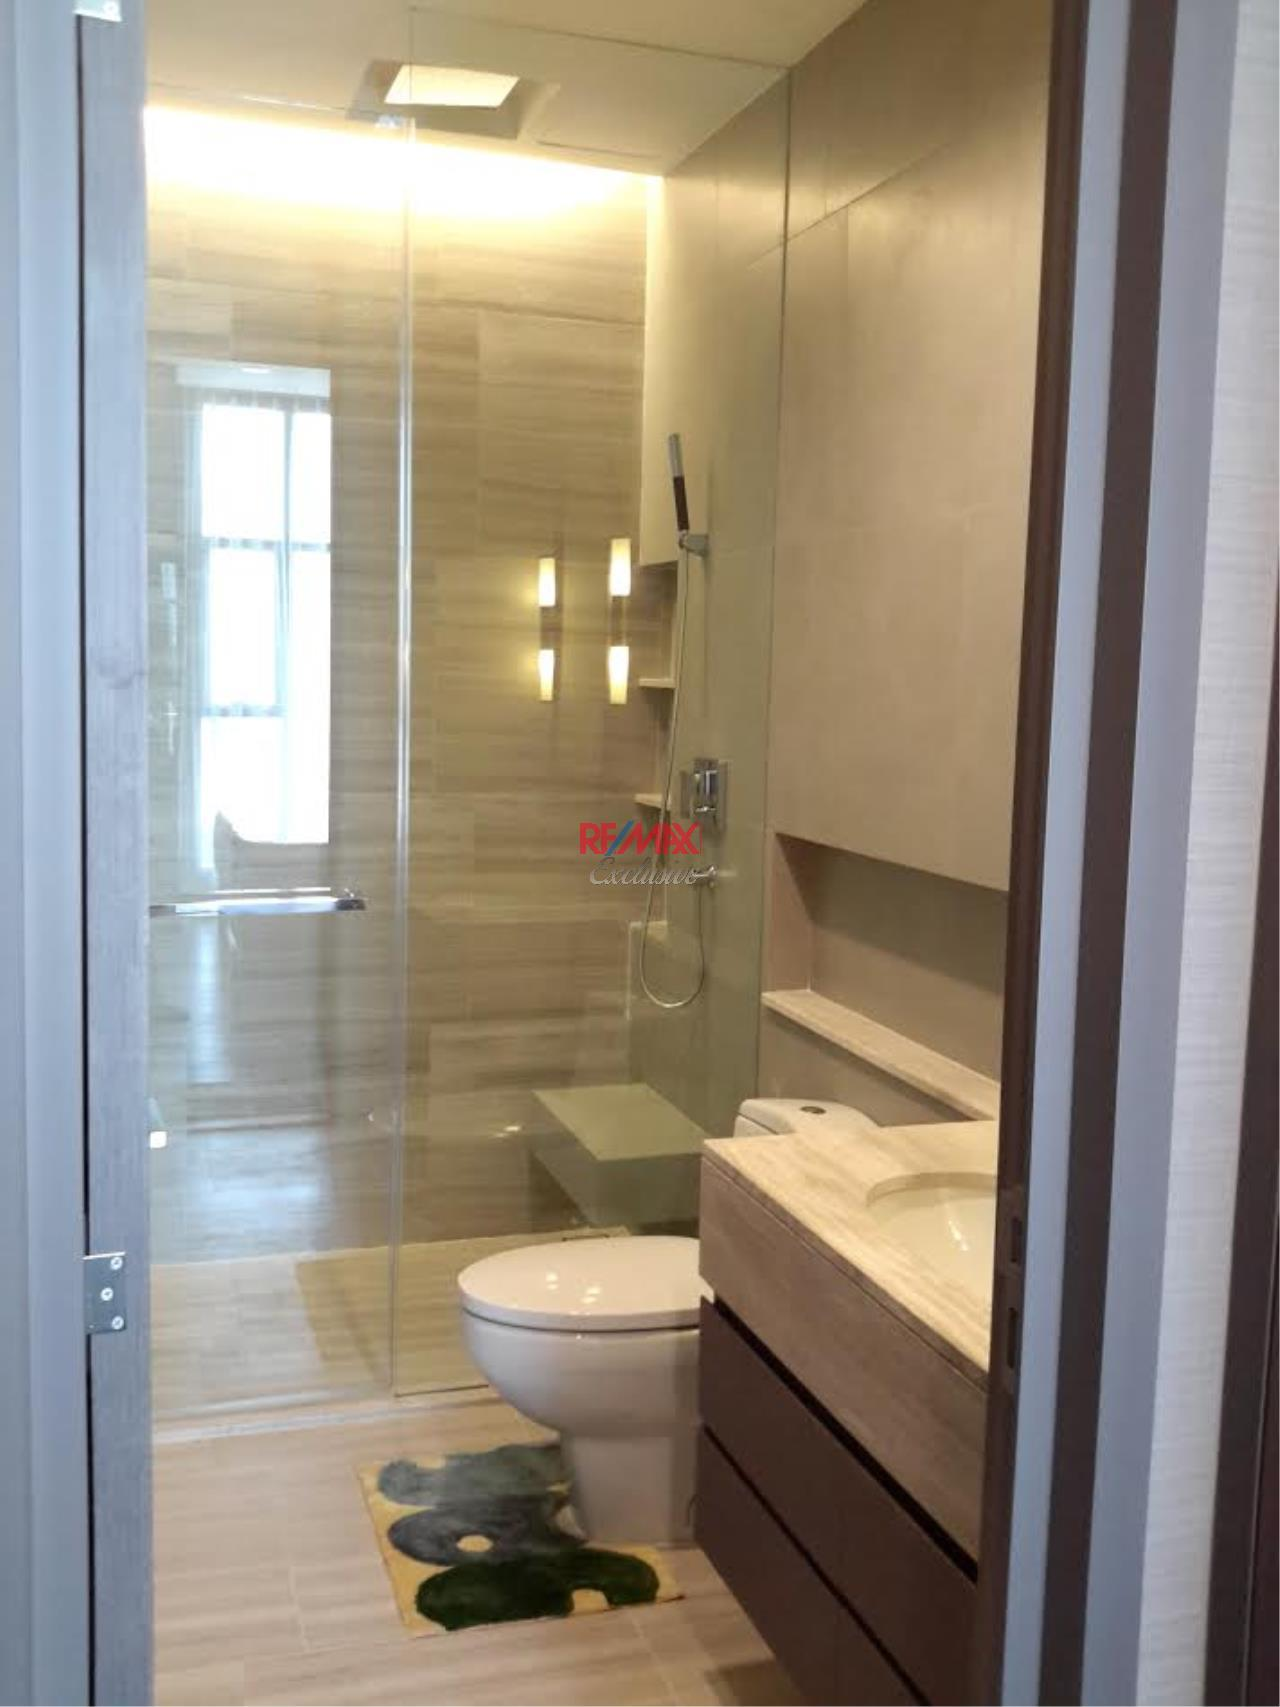 RE/MAX Exclusive Agency's The Diplomat Sathorn 1 Bedroom for rent 40,000 THB 11